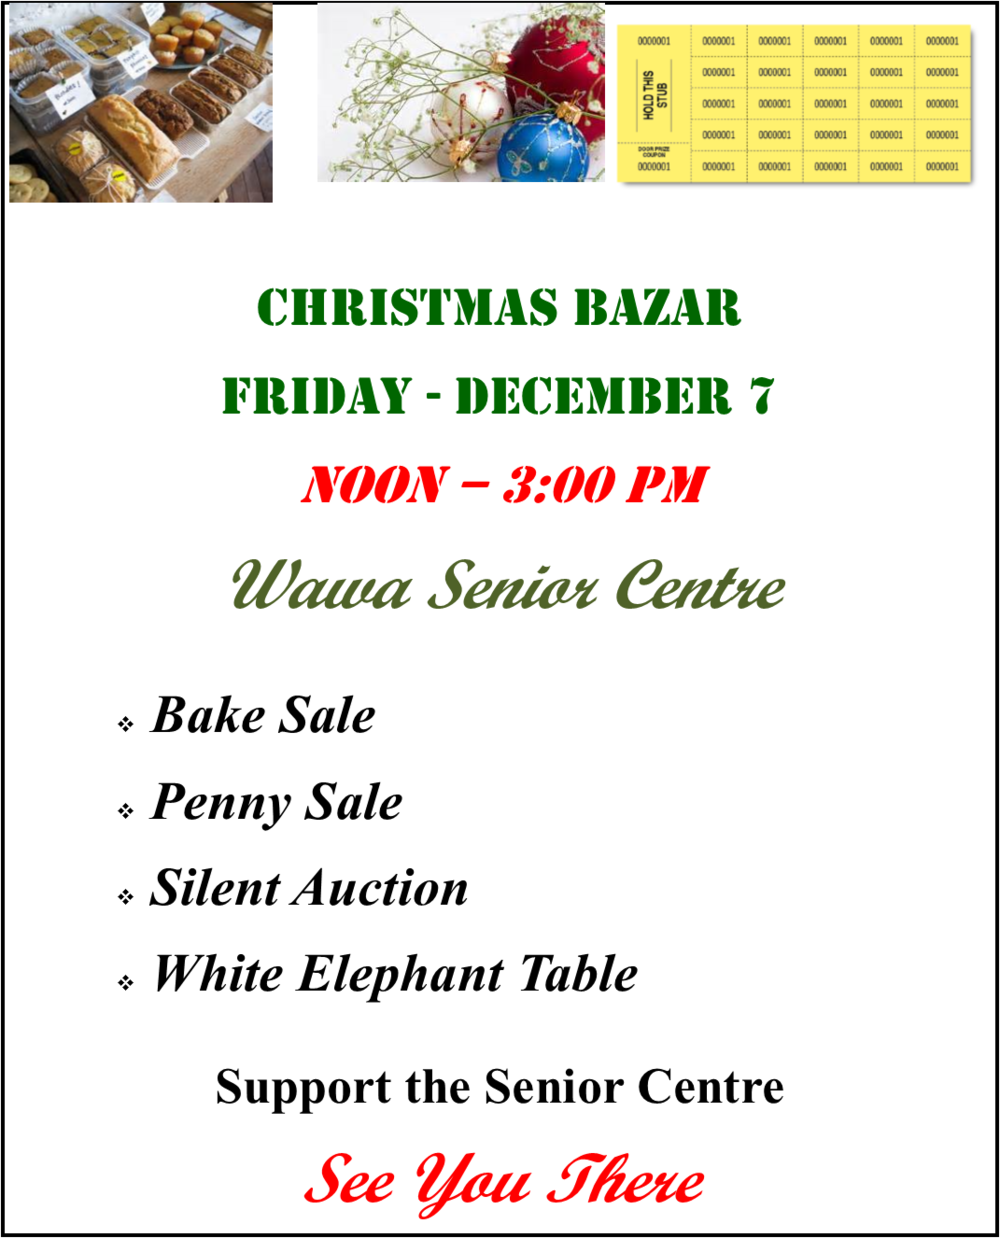 11-26- 18 SENIORS CHRISTMAS BAZAAR DEC 7 1-4PM.png